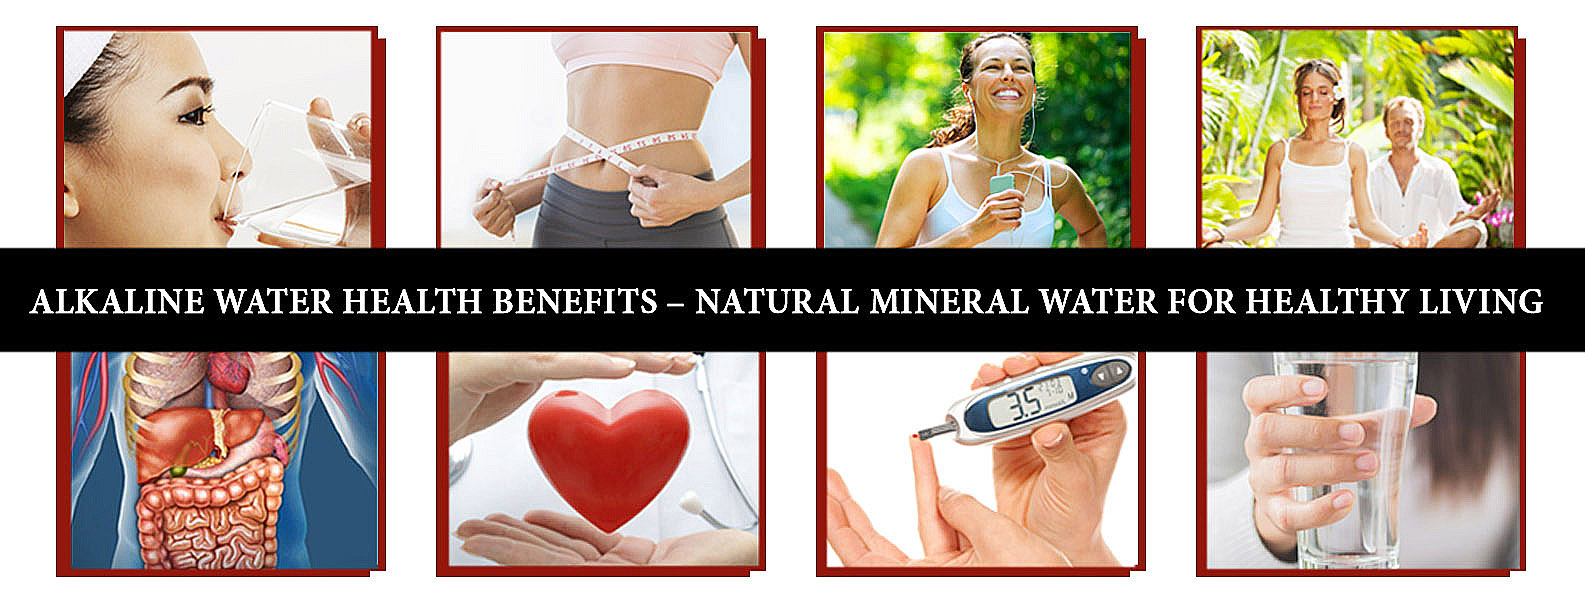 Top 11 Alkaline Water Health Benefits – Natural Mineral Water for Healthy Living